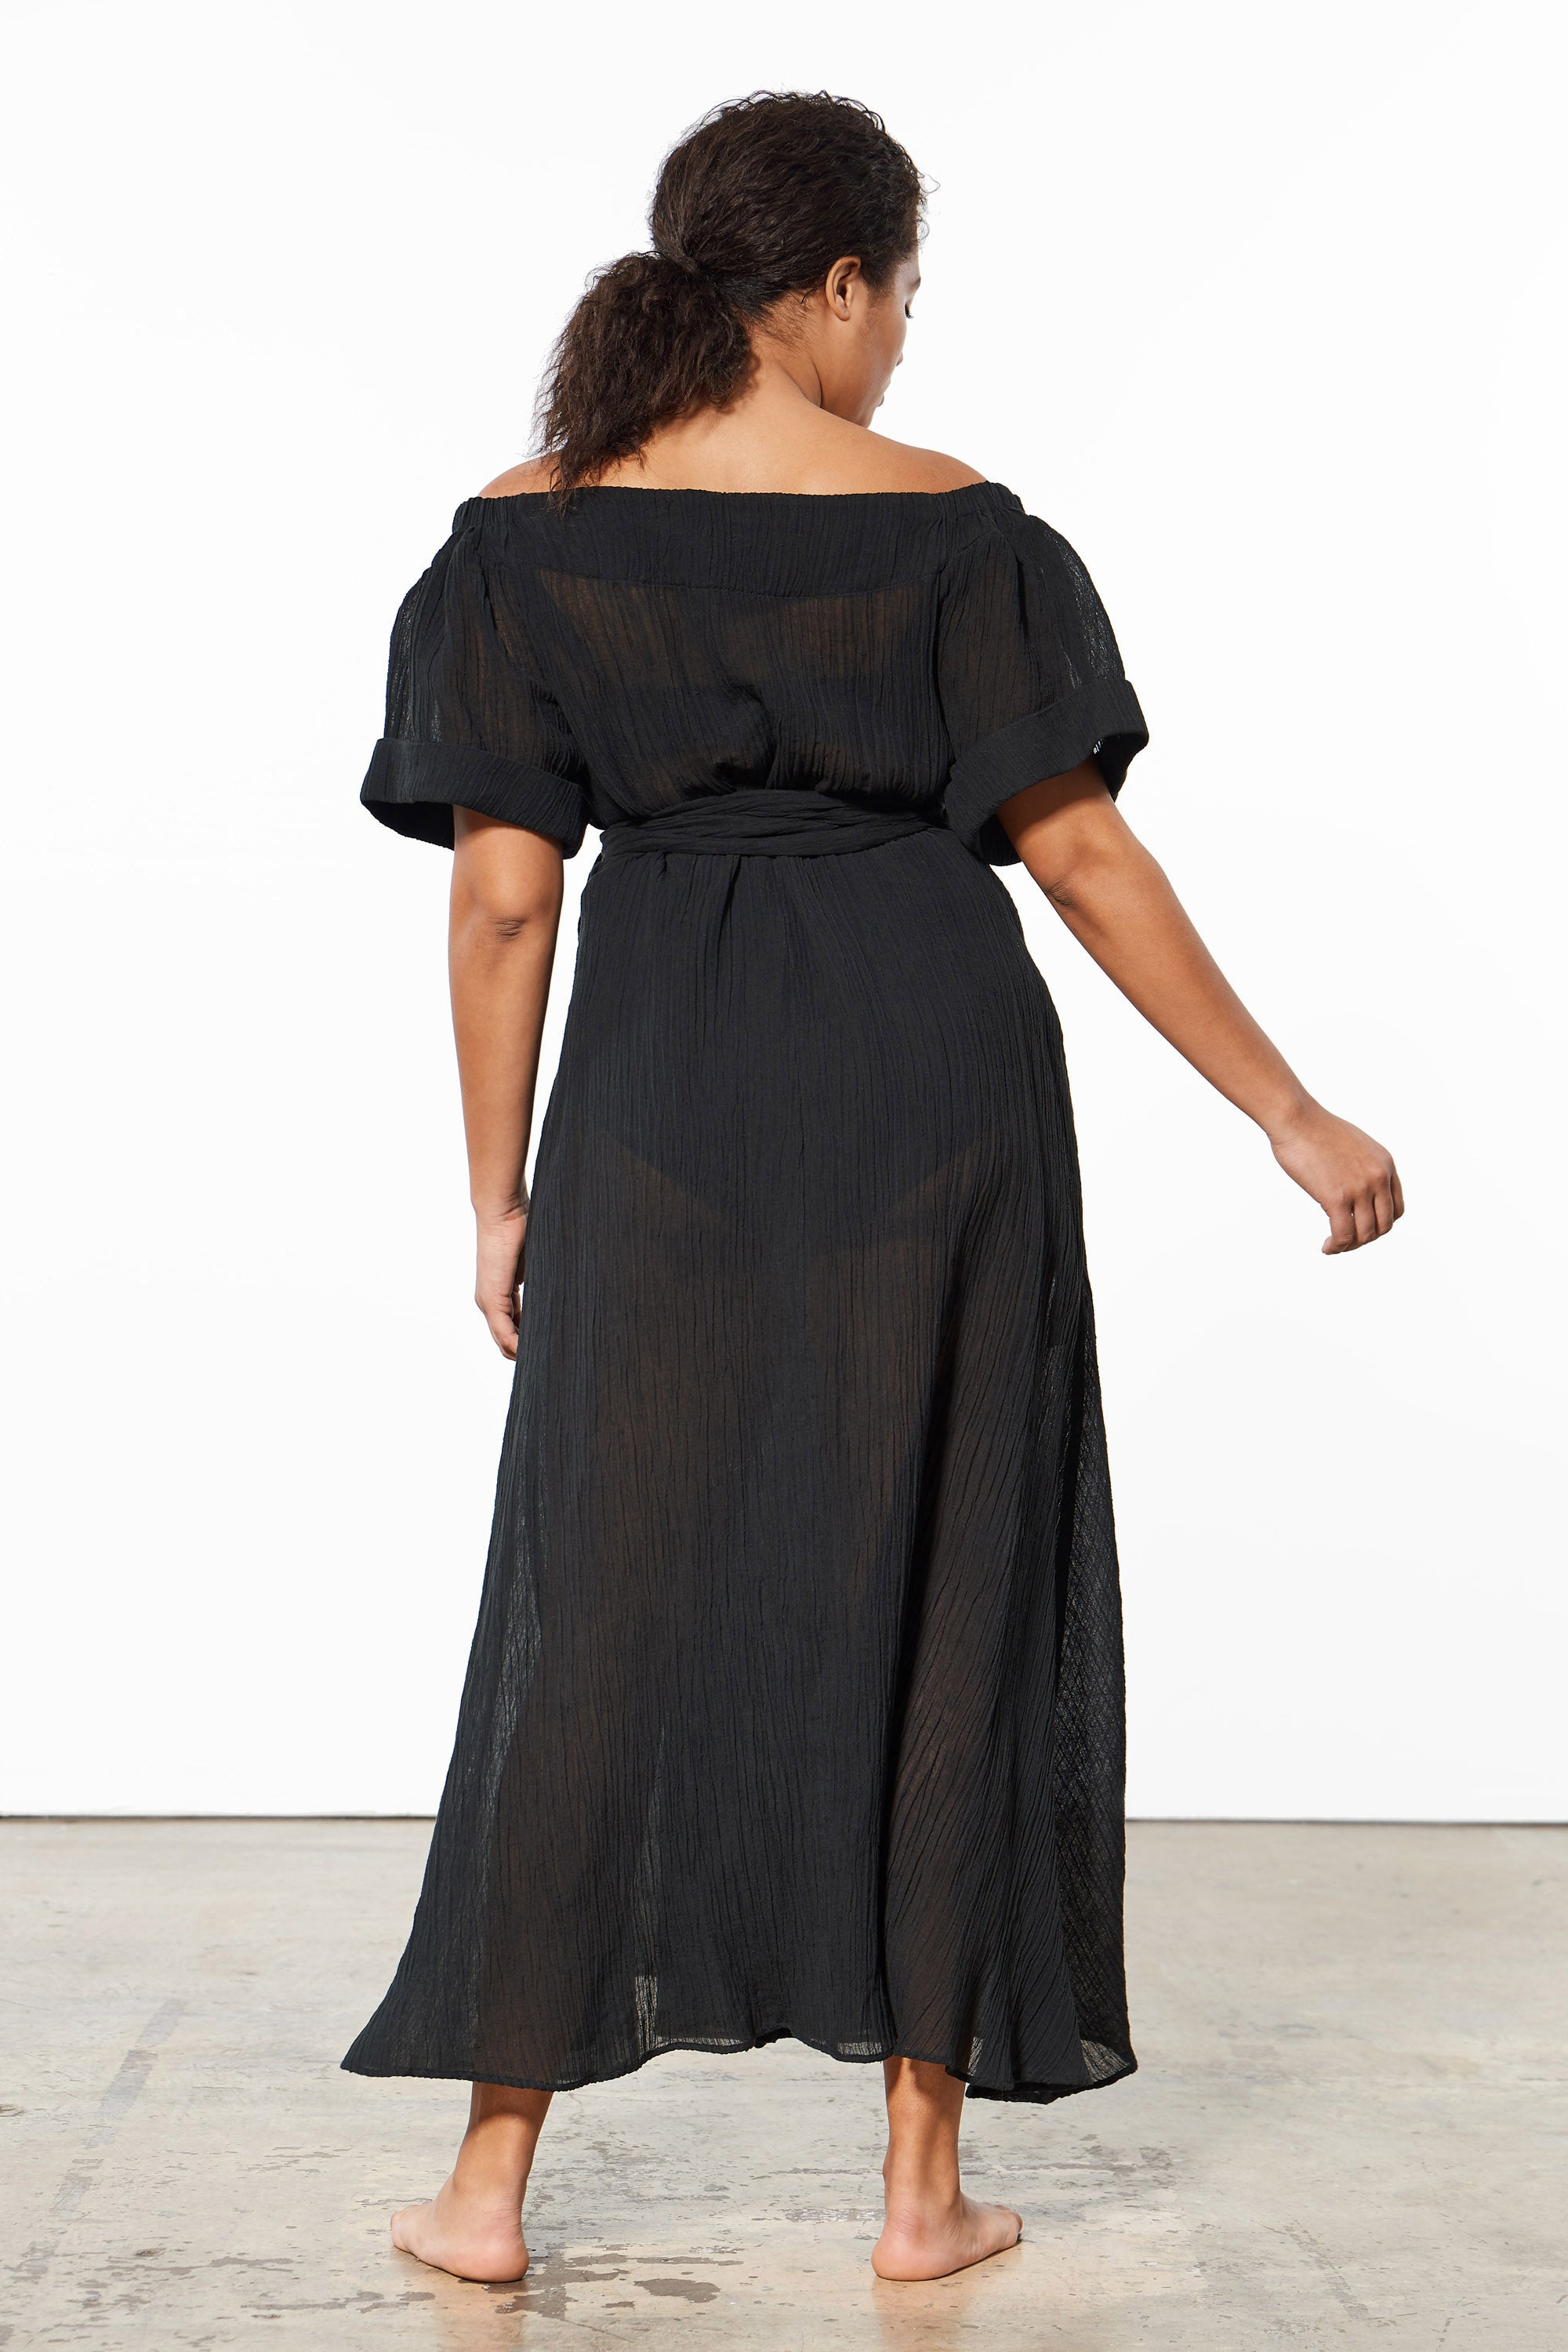 Mara Hoffman Extended Black Adelina Cover Up Dress in organic cotton and linen (back)